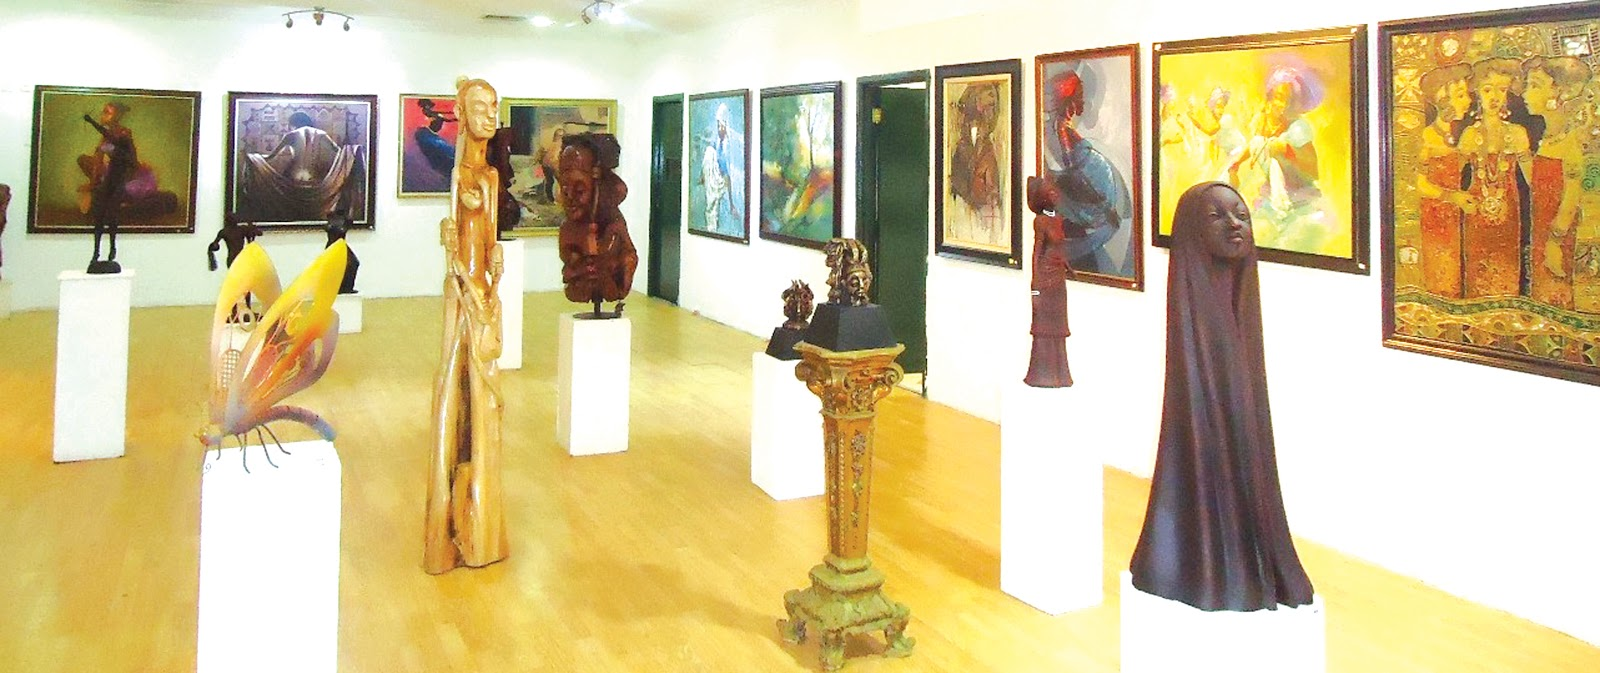 An Exhibition at Rele art Gallery // source: authorityngr.com